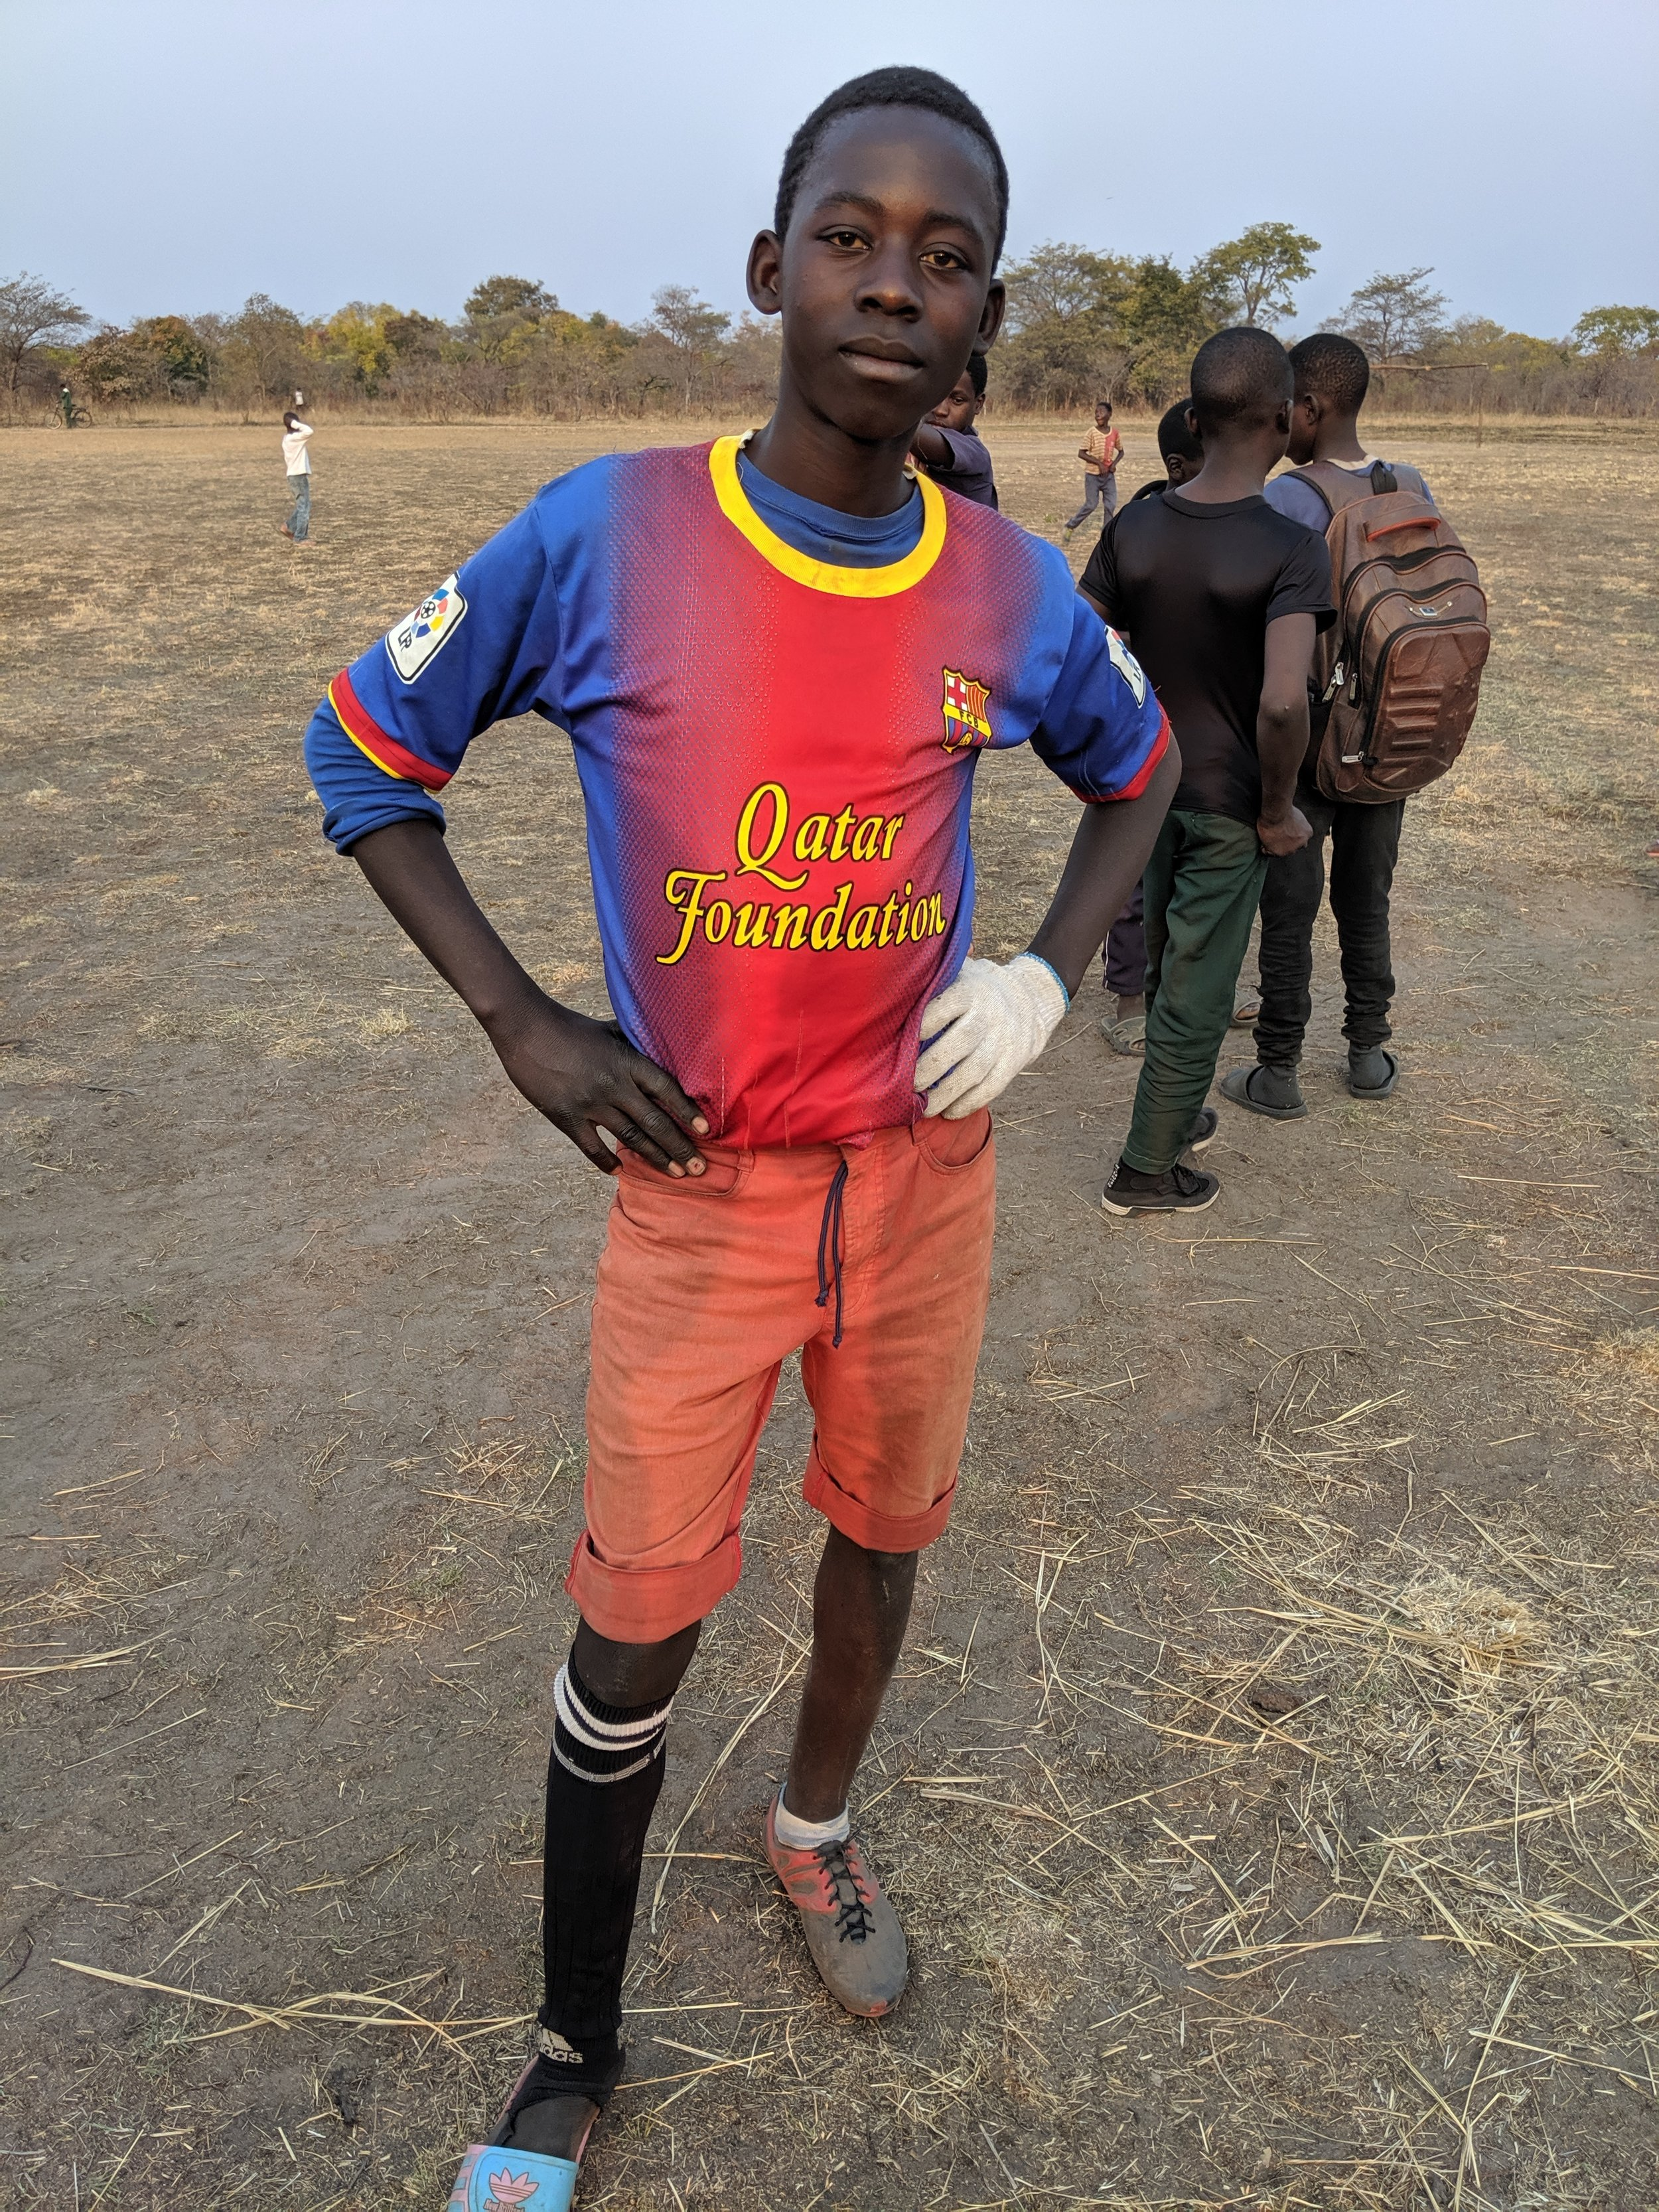 Man of the match - Adam with the game's lone goal. He was injured in the second half. He didn't play wearing that sandal, but one of his opponents played barefoot.